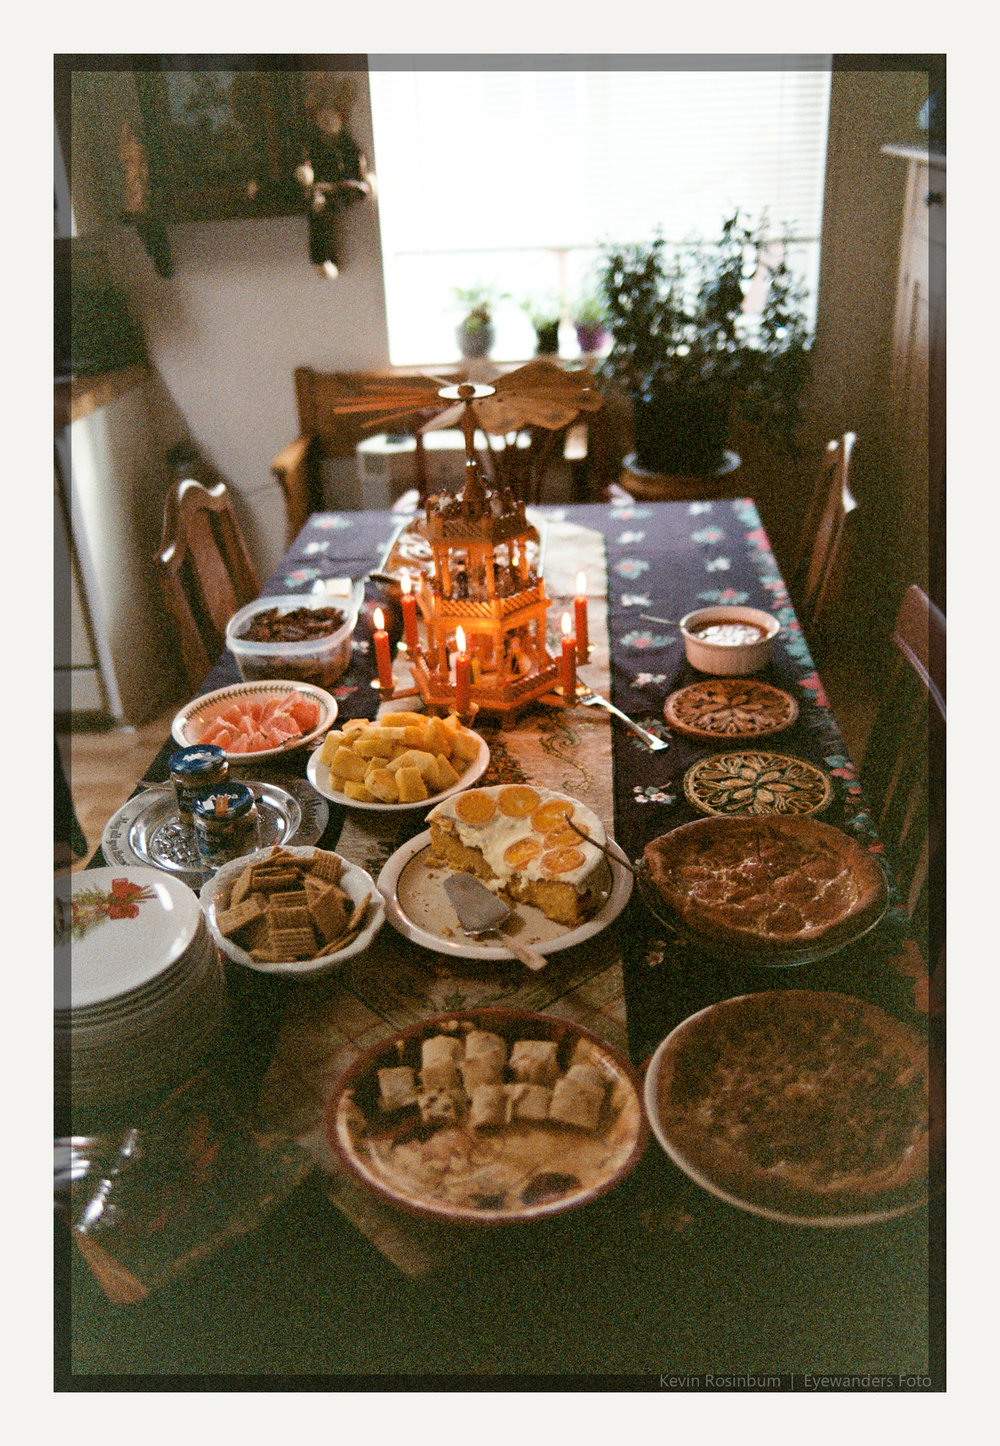 Christmas Morning Breakfast | Pentax MZ3 FA31mm | Kodak VPS 160 | Kevin Rosinbum